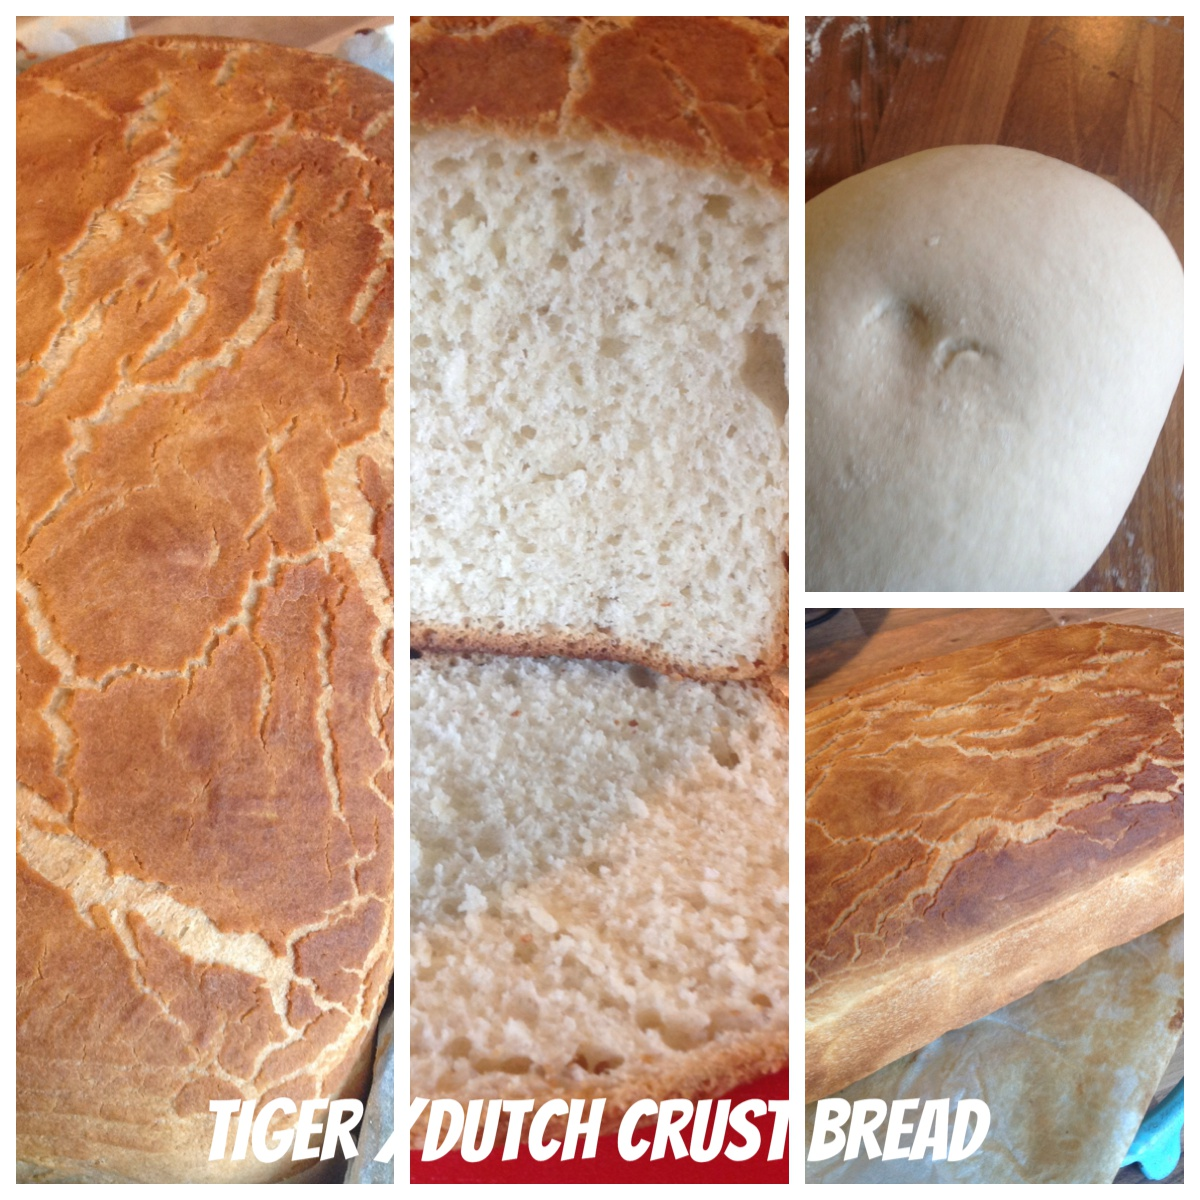 Crusty Bread with Tiger/Dutch Crust topping